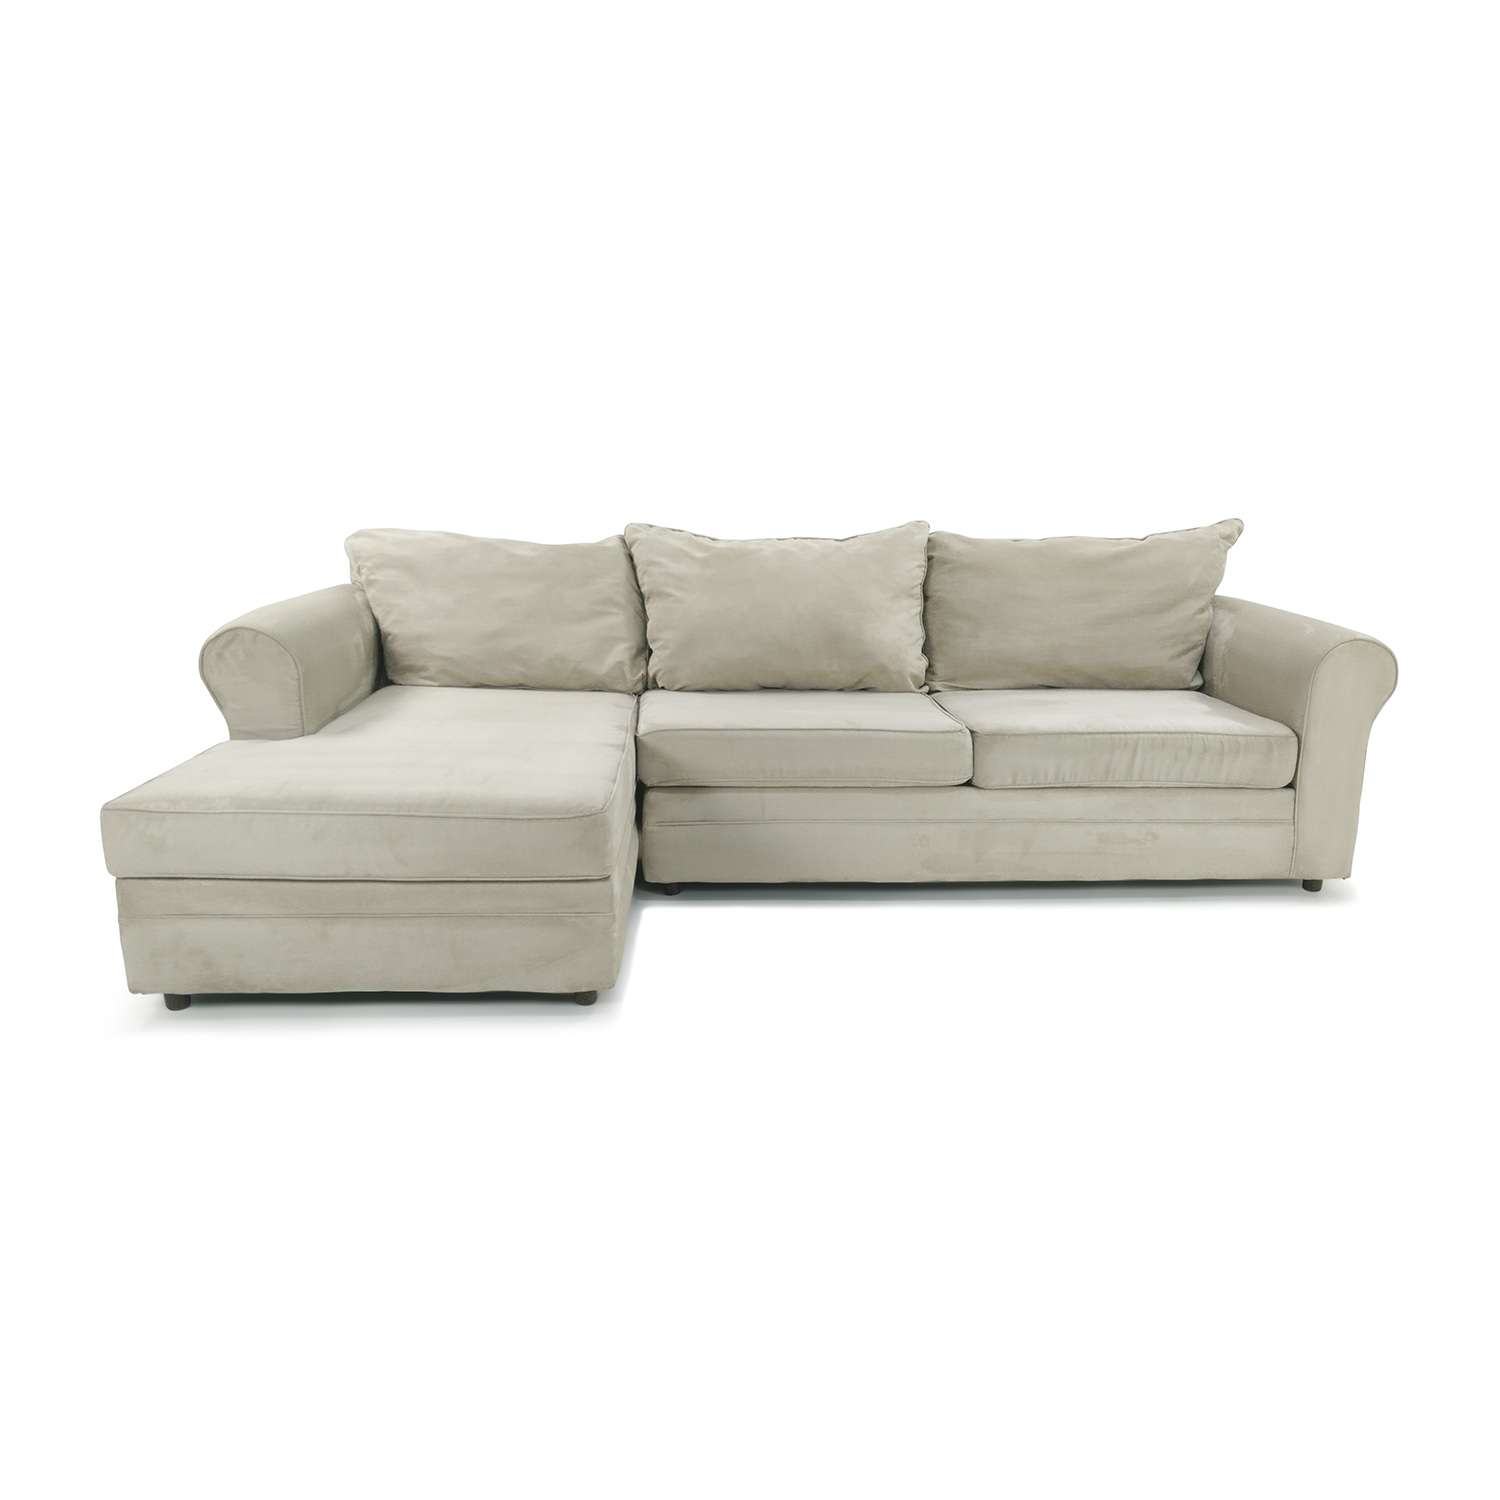 Sectional sofas bobs raymond and flanigan sofas white sofa for Playpen sectional sofa bobs